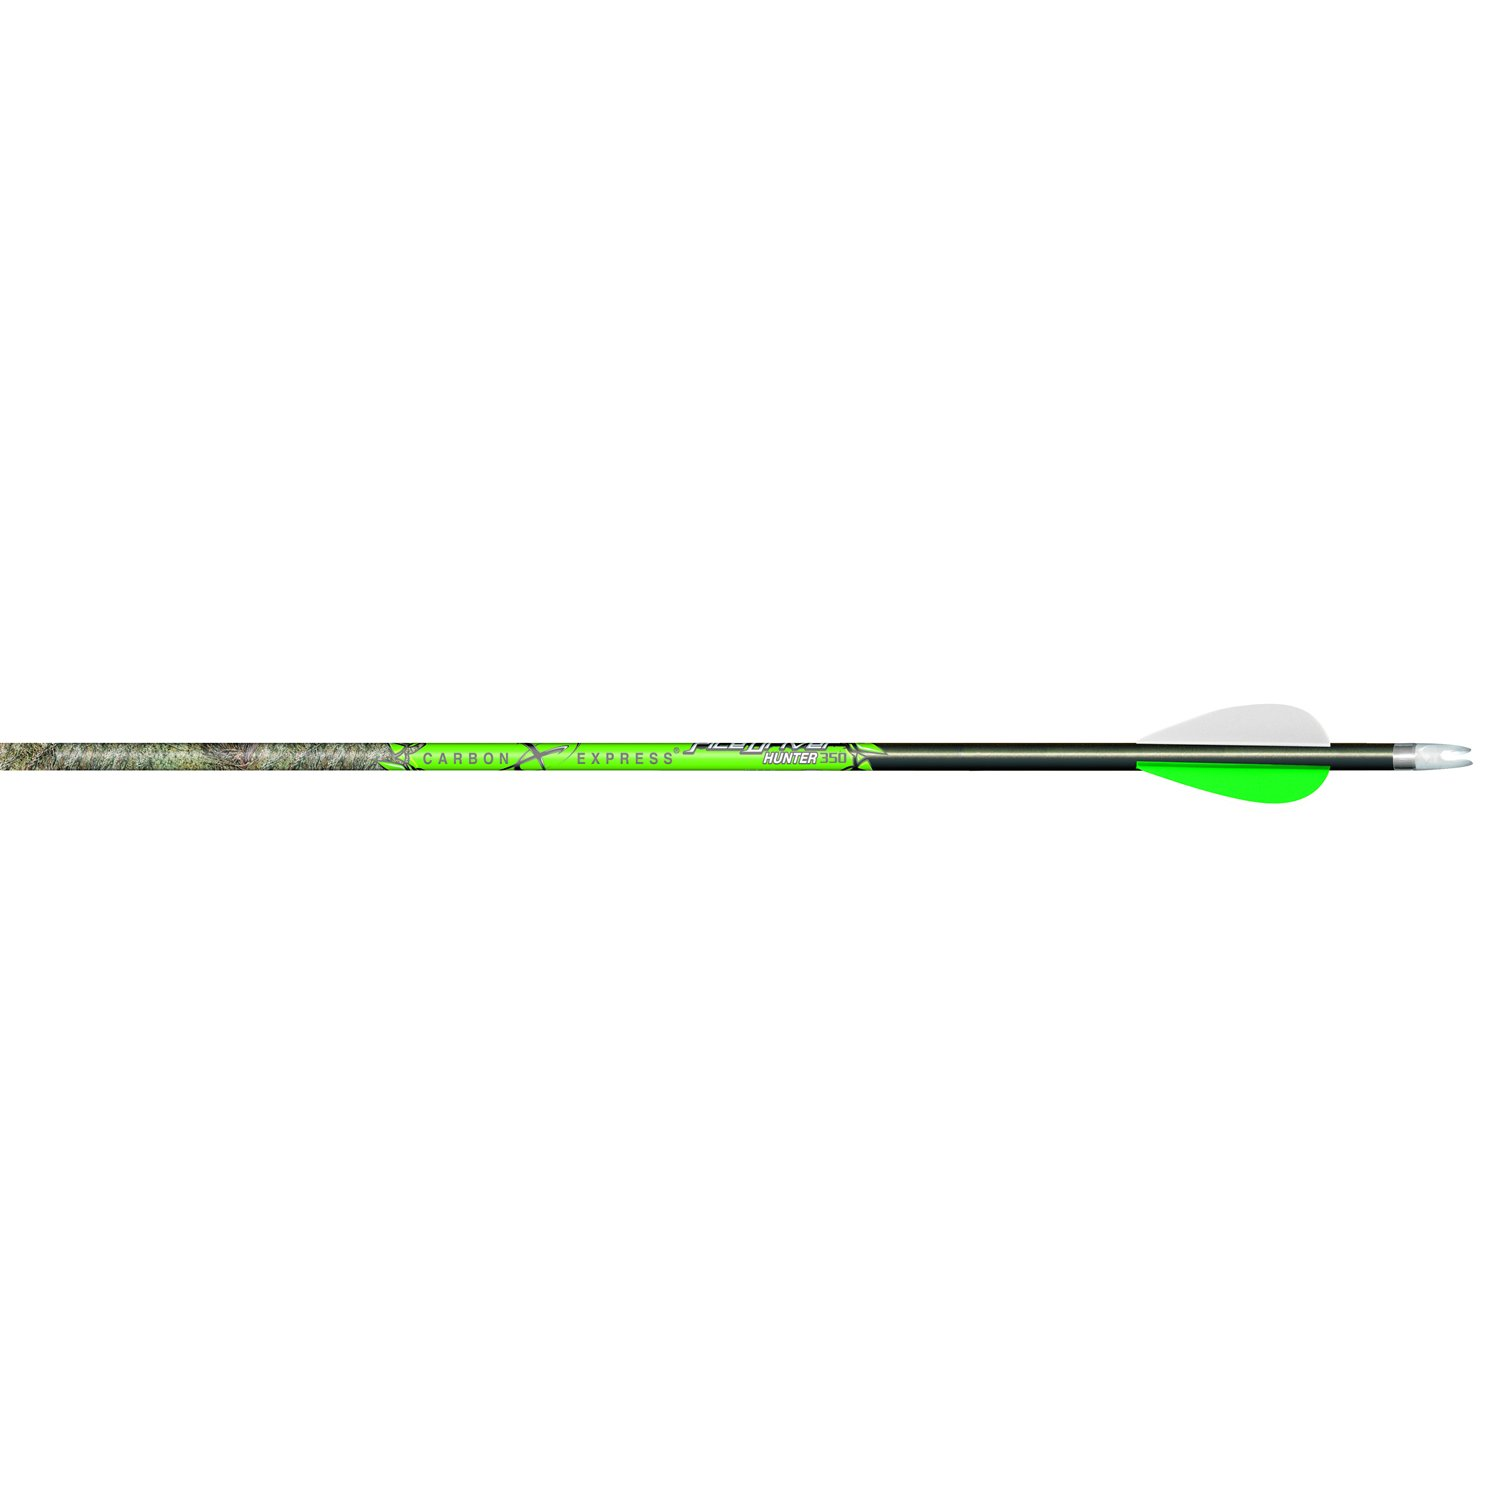 Carbon Express T1317 PileDriver Hunter Arrow with Built-In Weight Forward and 2-Inch Assault Vanes, 350-Sized Mossy Oak Brush Pattern Shaft, 12-Pack